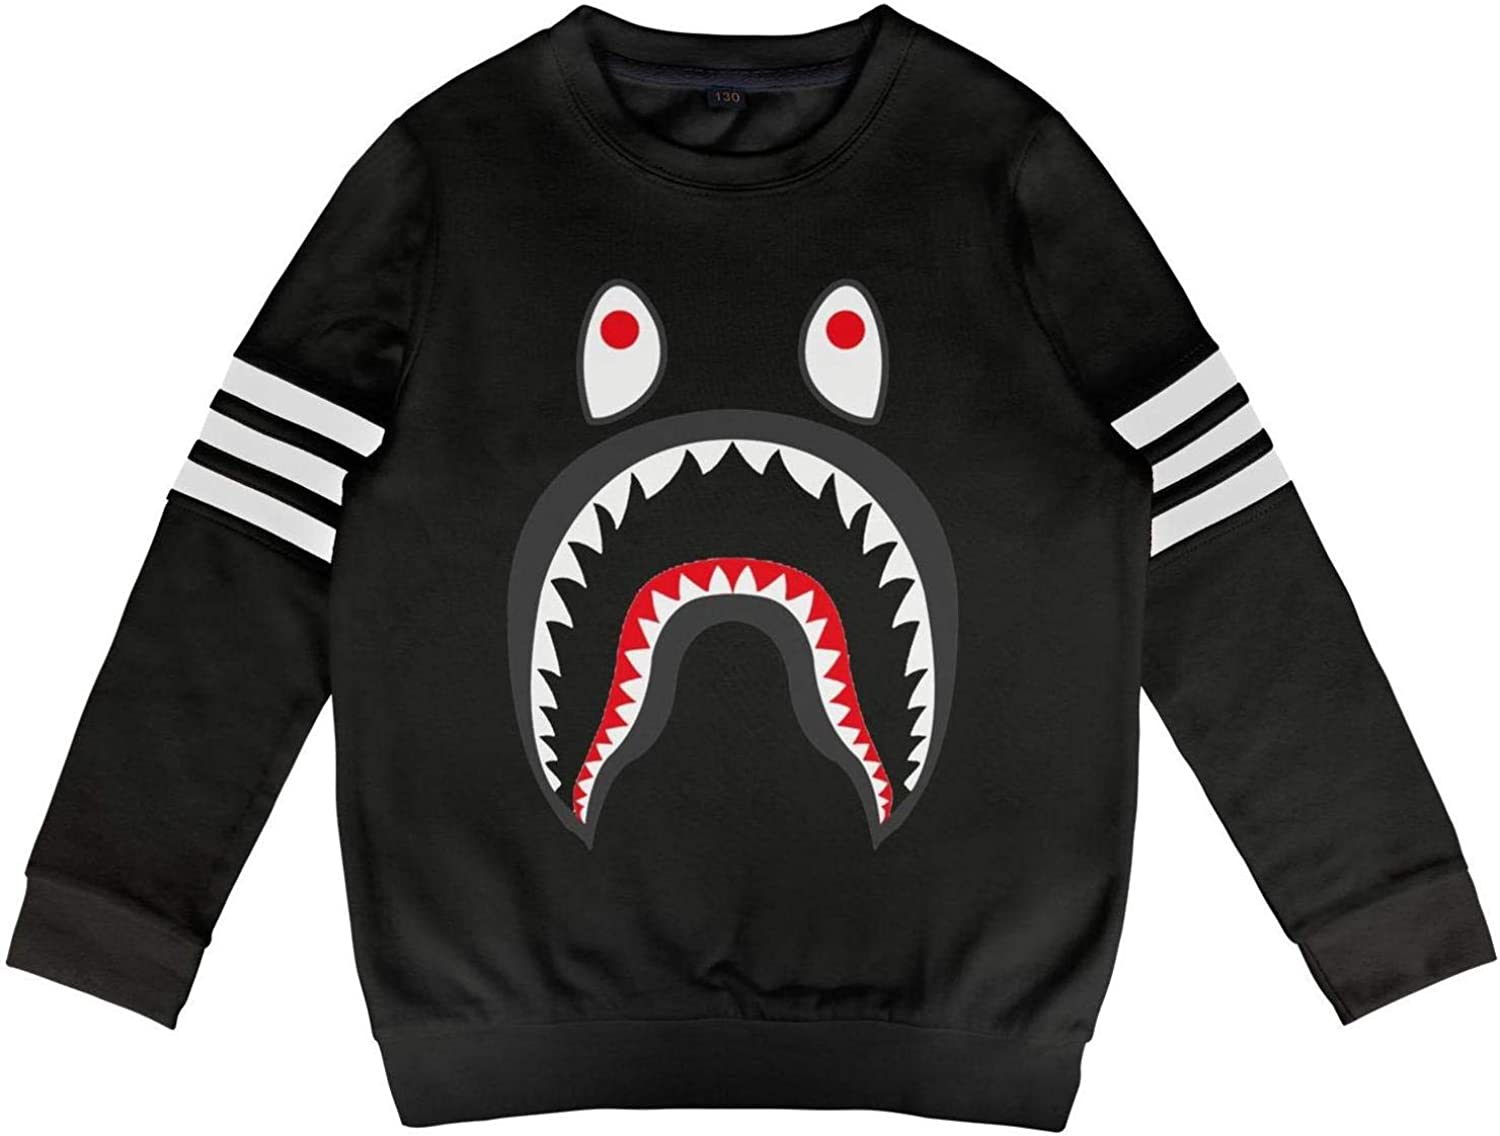 Kids Shark PONR TEE Mens Little Boys Crew Sweatshirt for Girls Boys Crew Neck.Youth Outfit